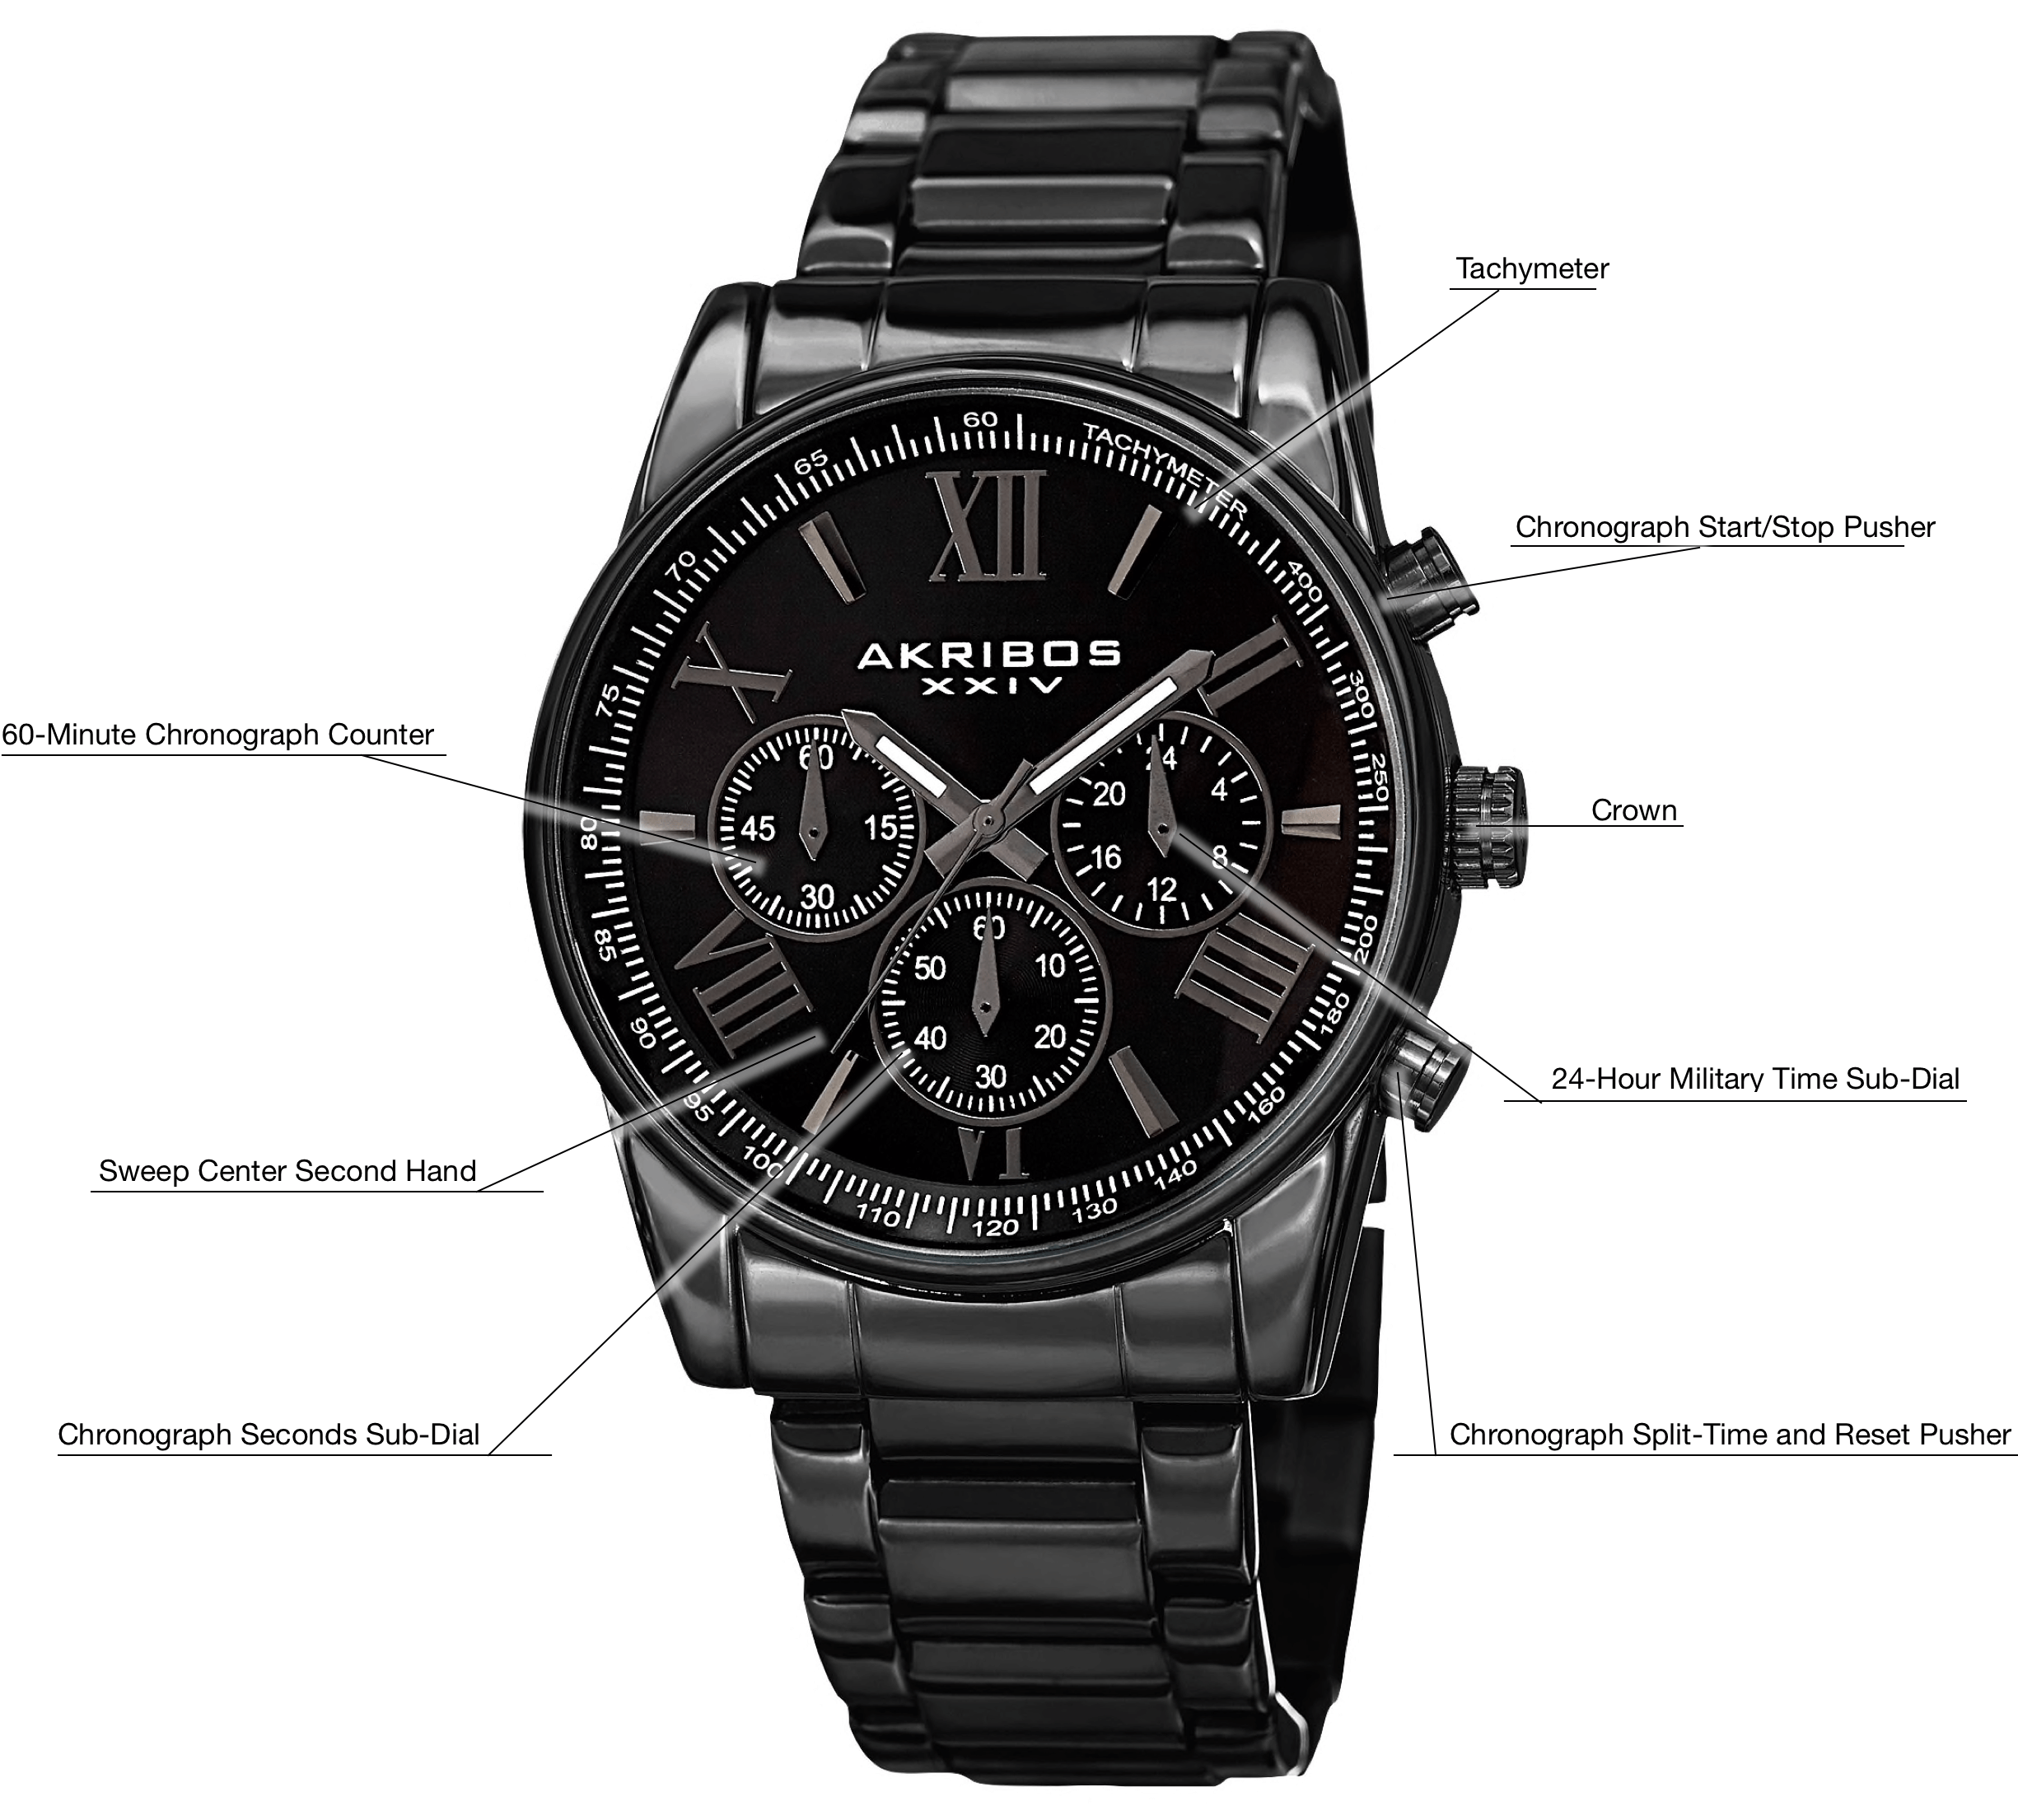 An infograph of a chronograph watch pointing to the parts of a chronograph watch